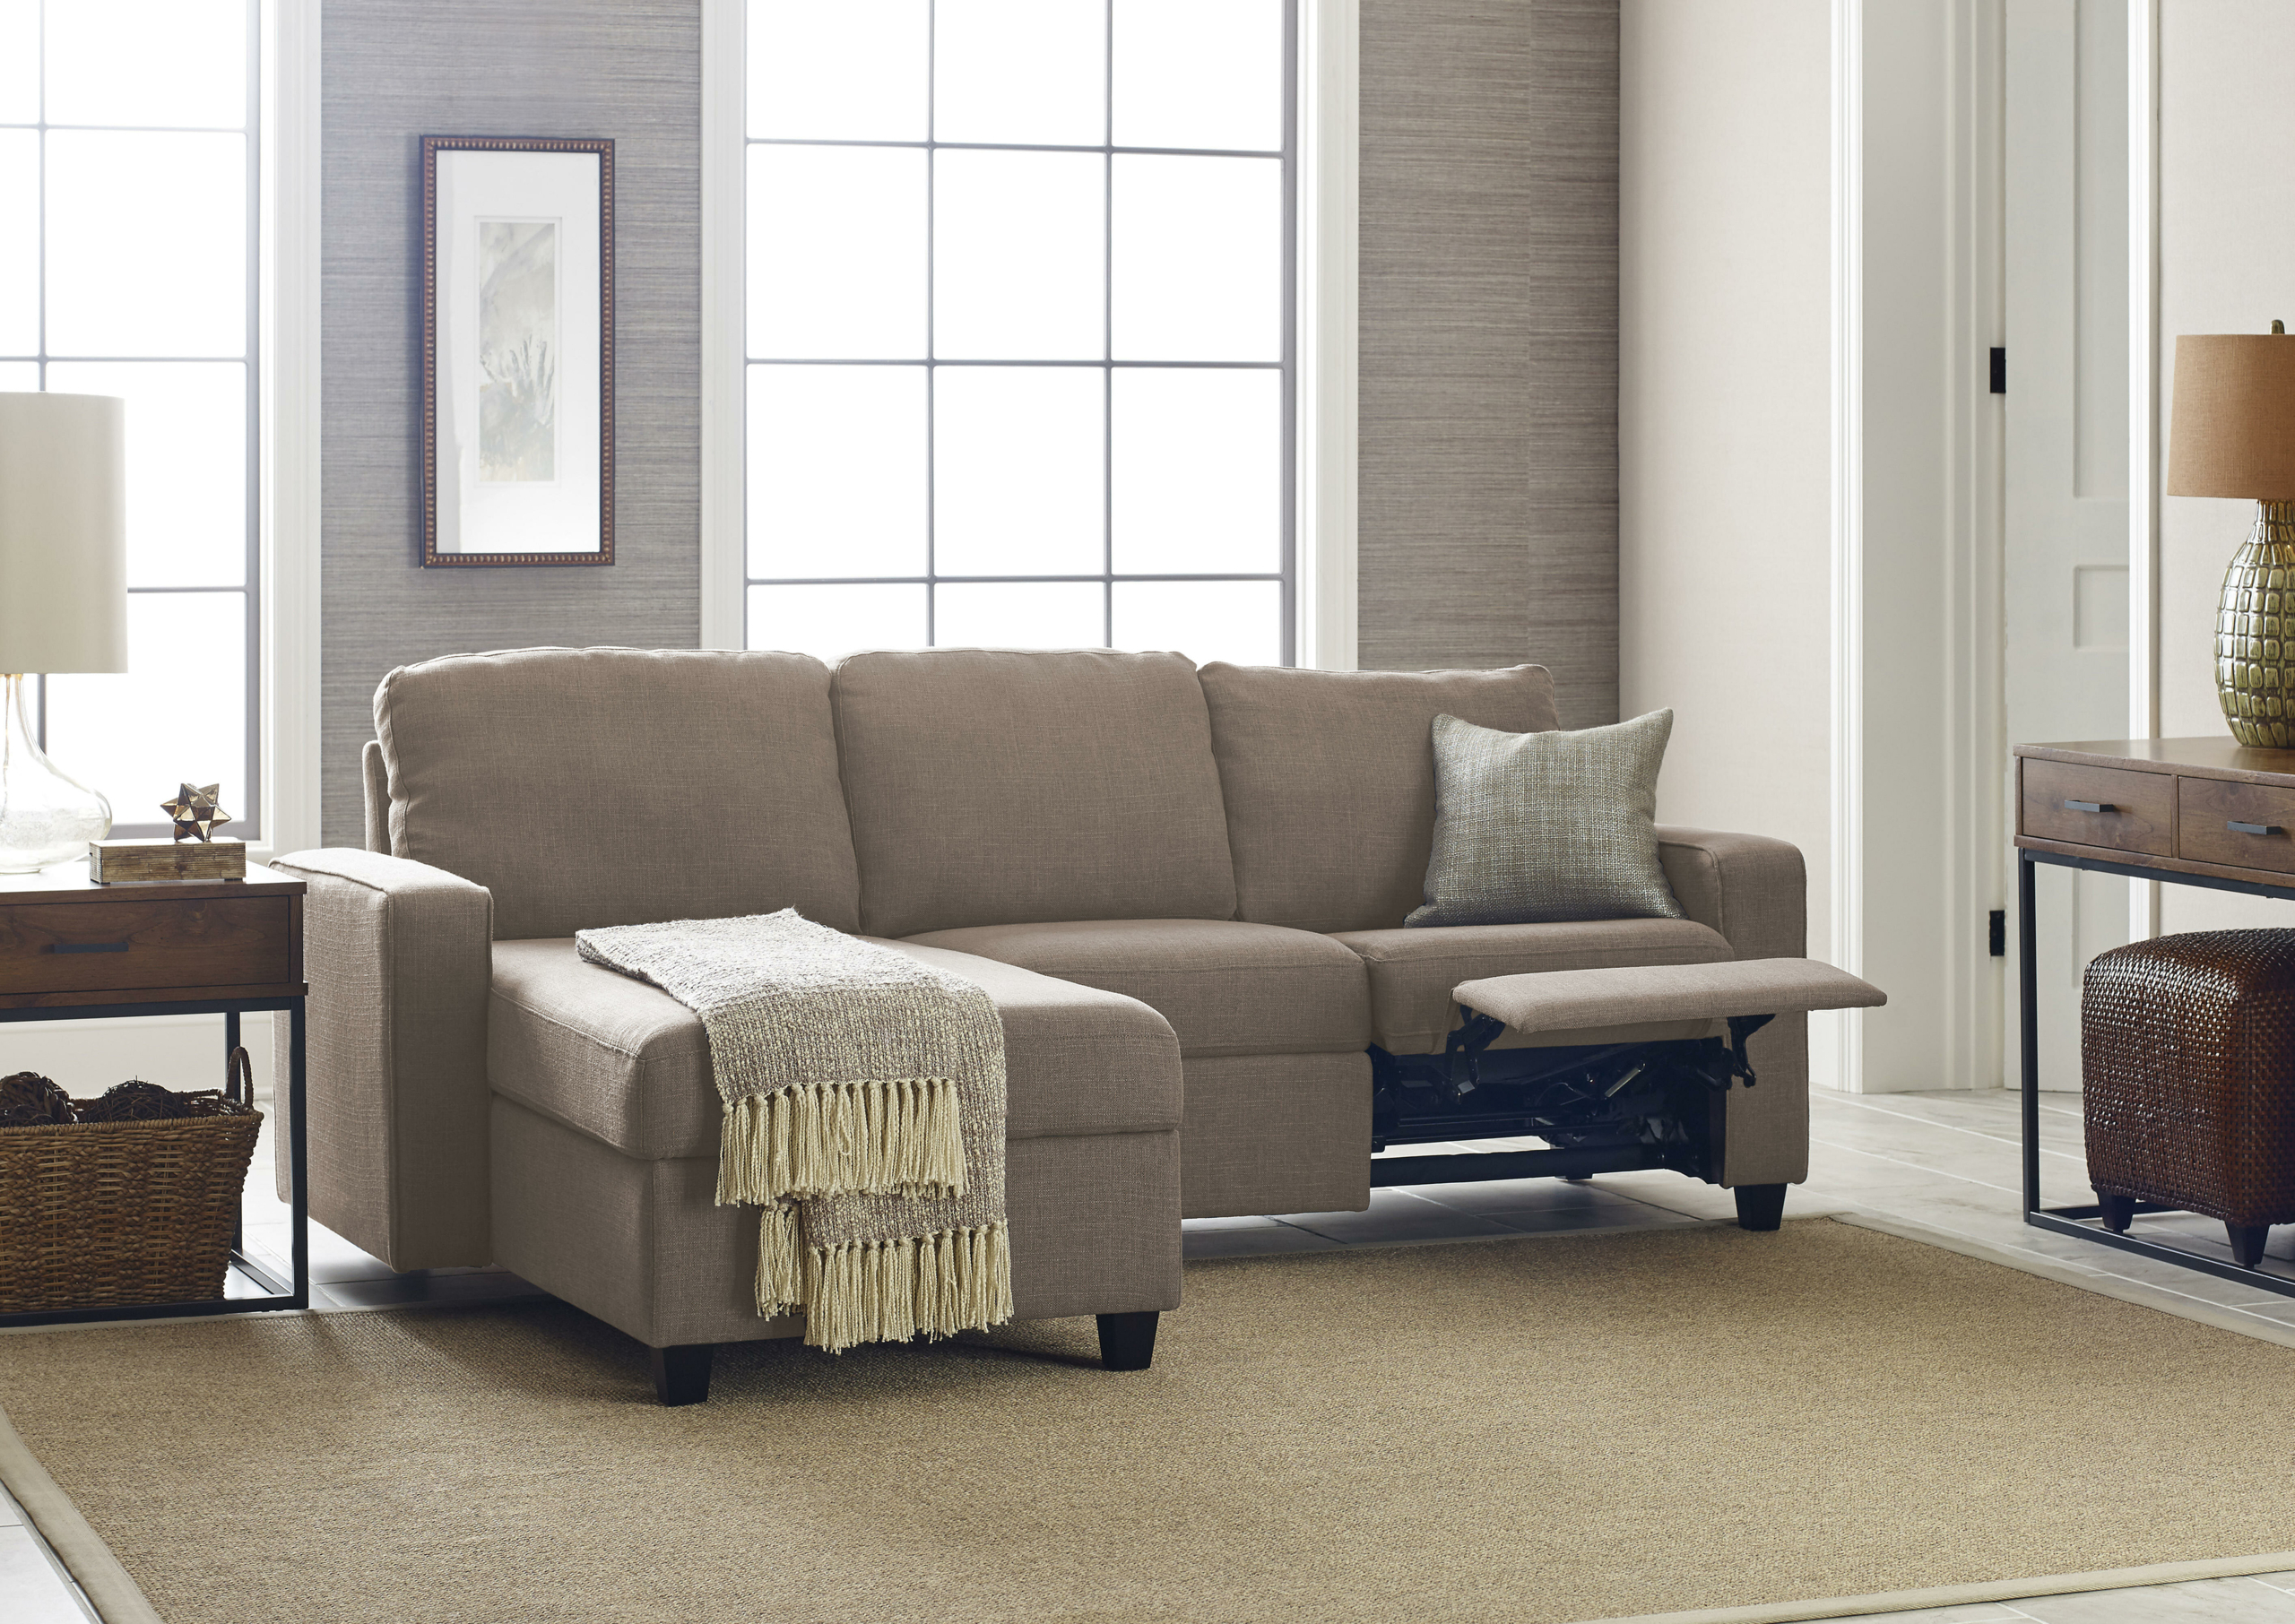 Picture of: Small Sectional Sofa With Recliner You Ll Love In 2020 Visualhunt